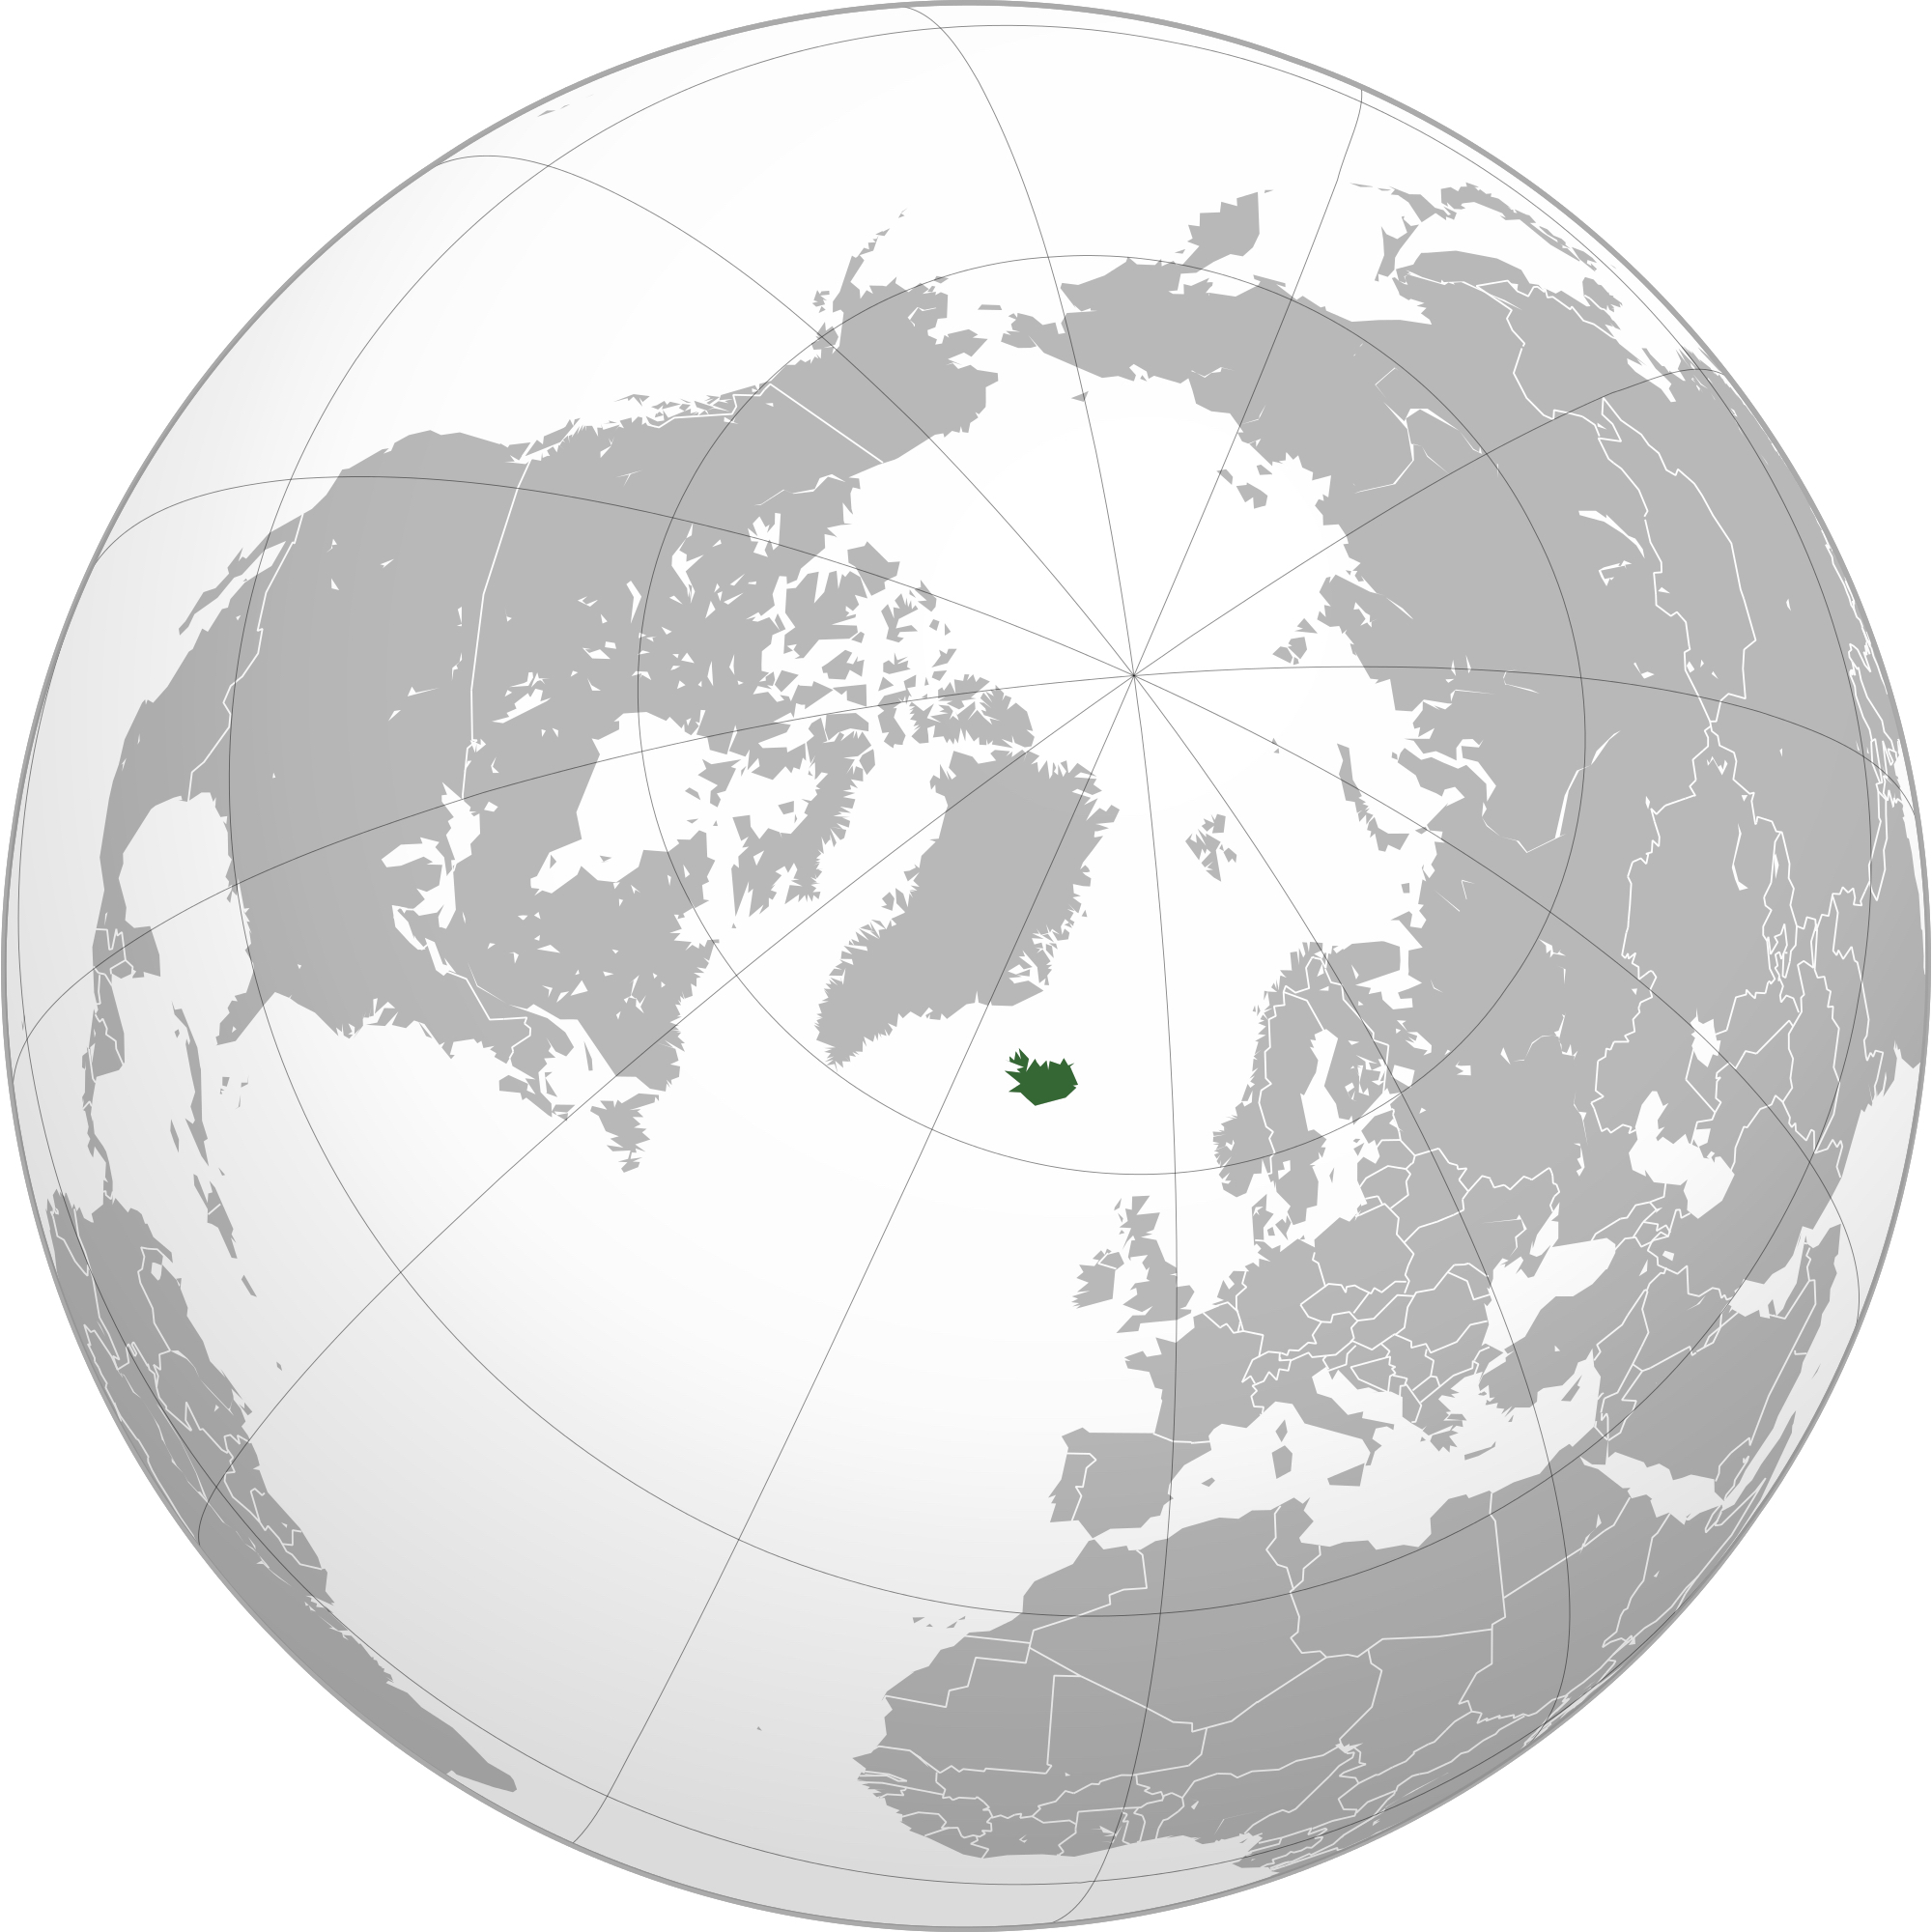 Iceland's Role in the World, 874–2016   RNH on reykjavik iceland on map, new zealand world map, 3d iceland map, iceland map europe, iceland political map, iceland reykjavik city center, europe and siberia map, iceland on the globe, iceland map with main rivers names, iceland in the world map, iceland on a map, mediterranean sea map, iceland road map, scandinavia denmark sweden norway map, iceland on us map, north sea map, iceland points of interest maps, iceland location in the world, iceland on europe, iceland light show in january,